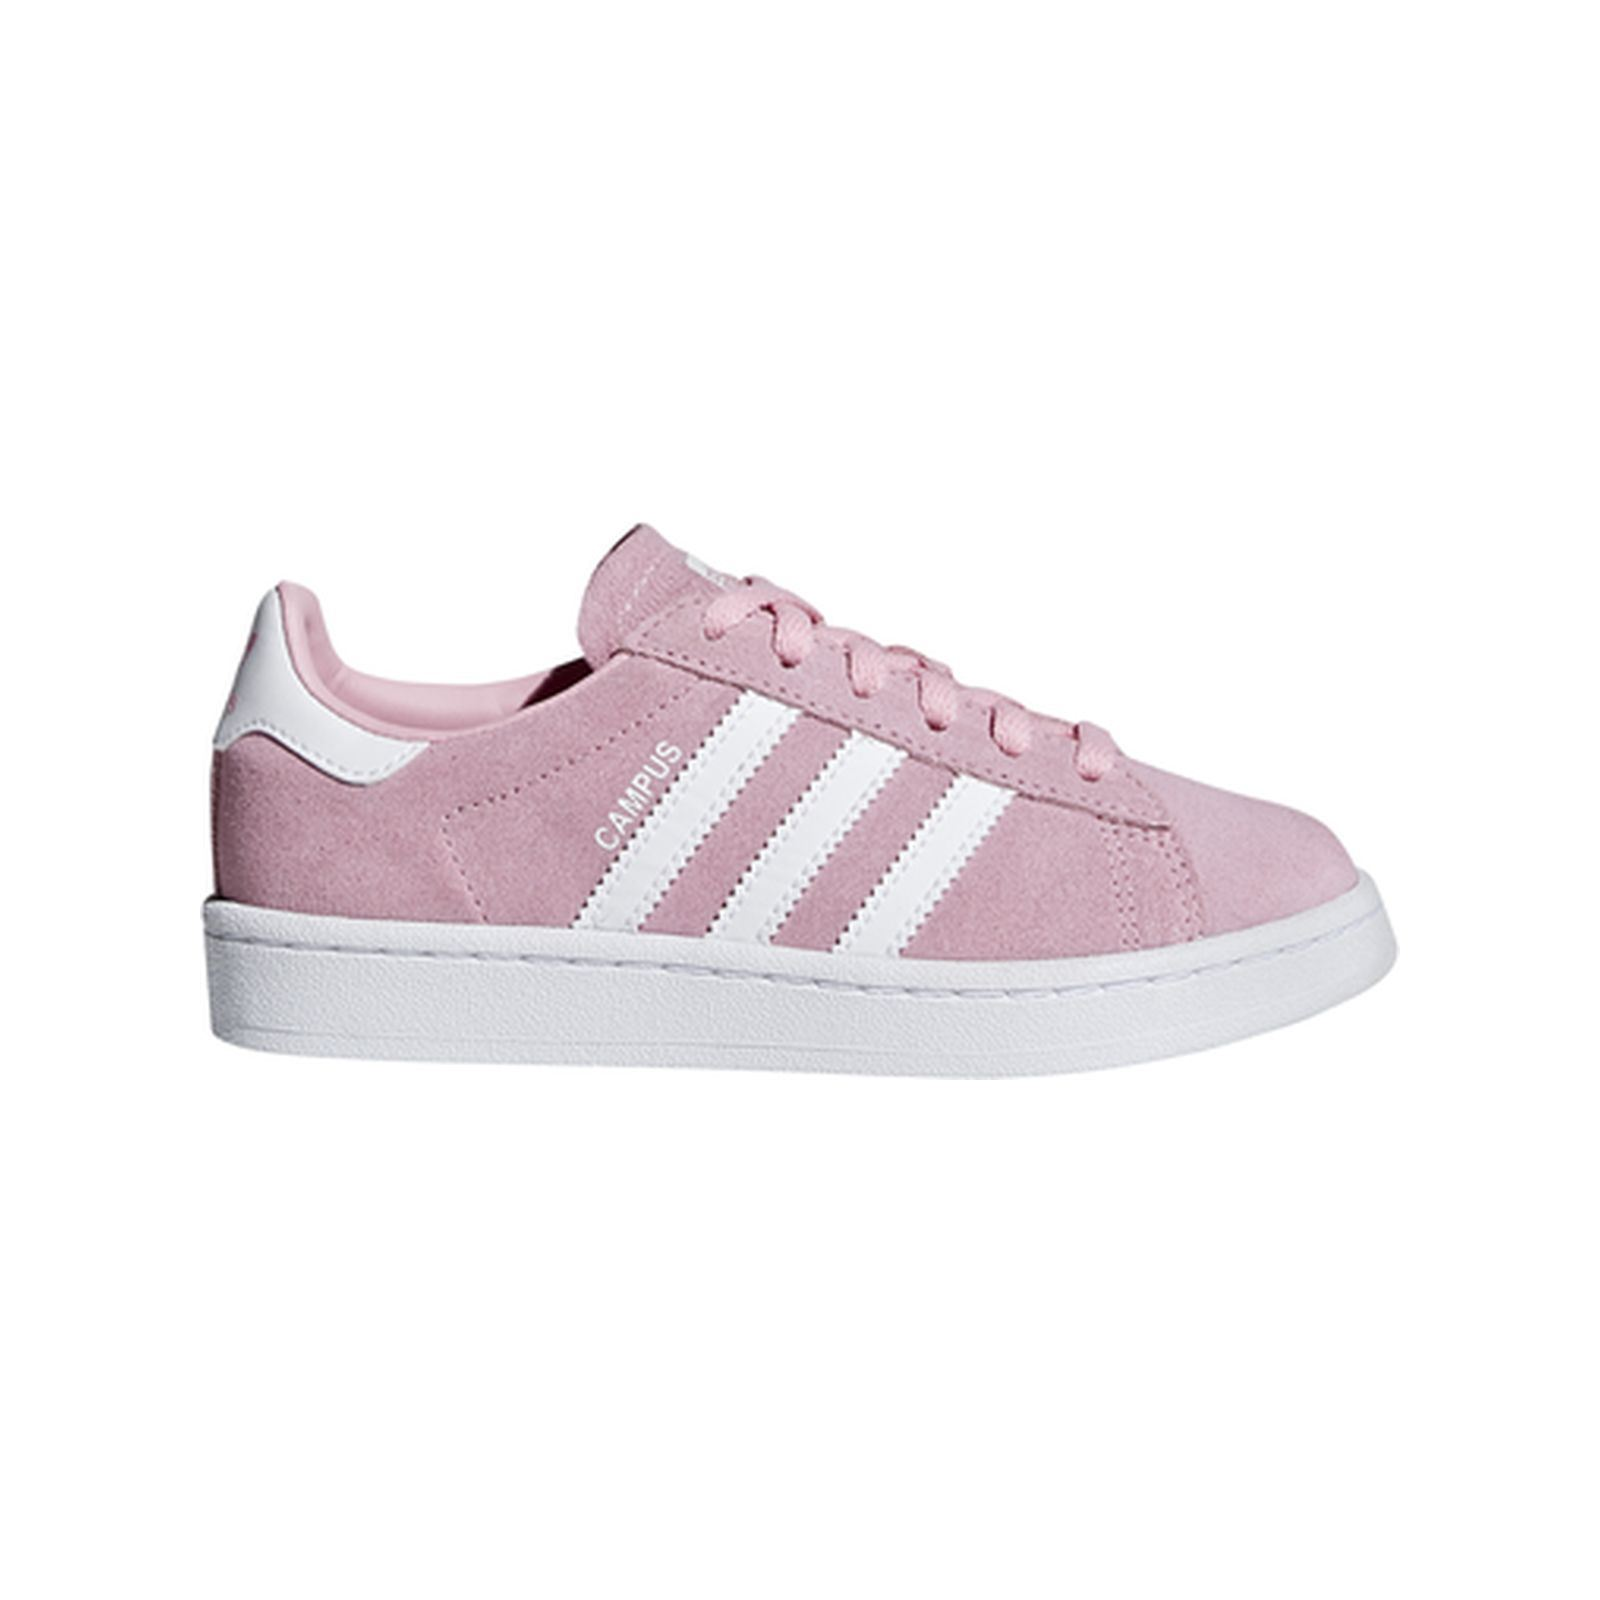 Campus C Baskets en cuir rose